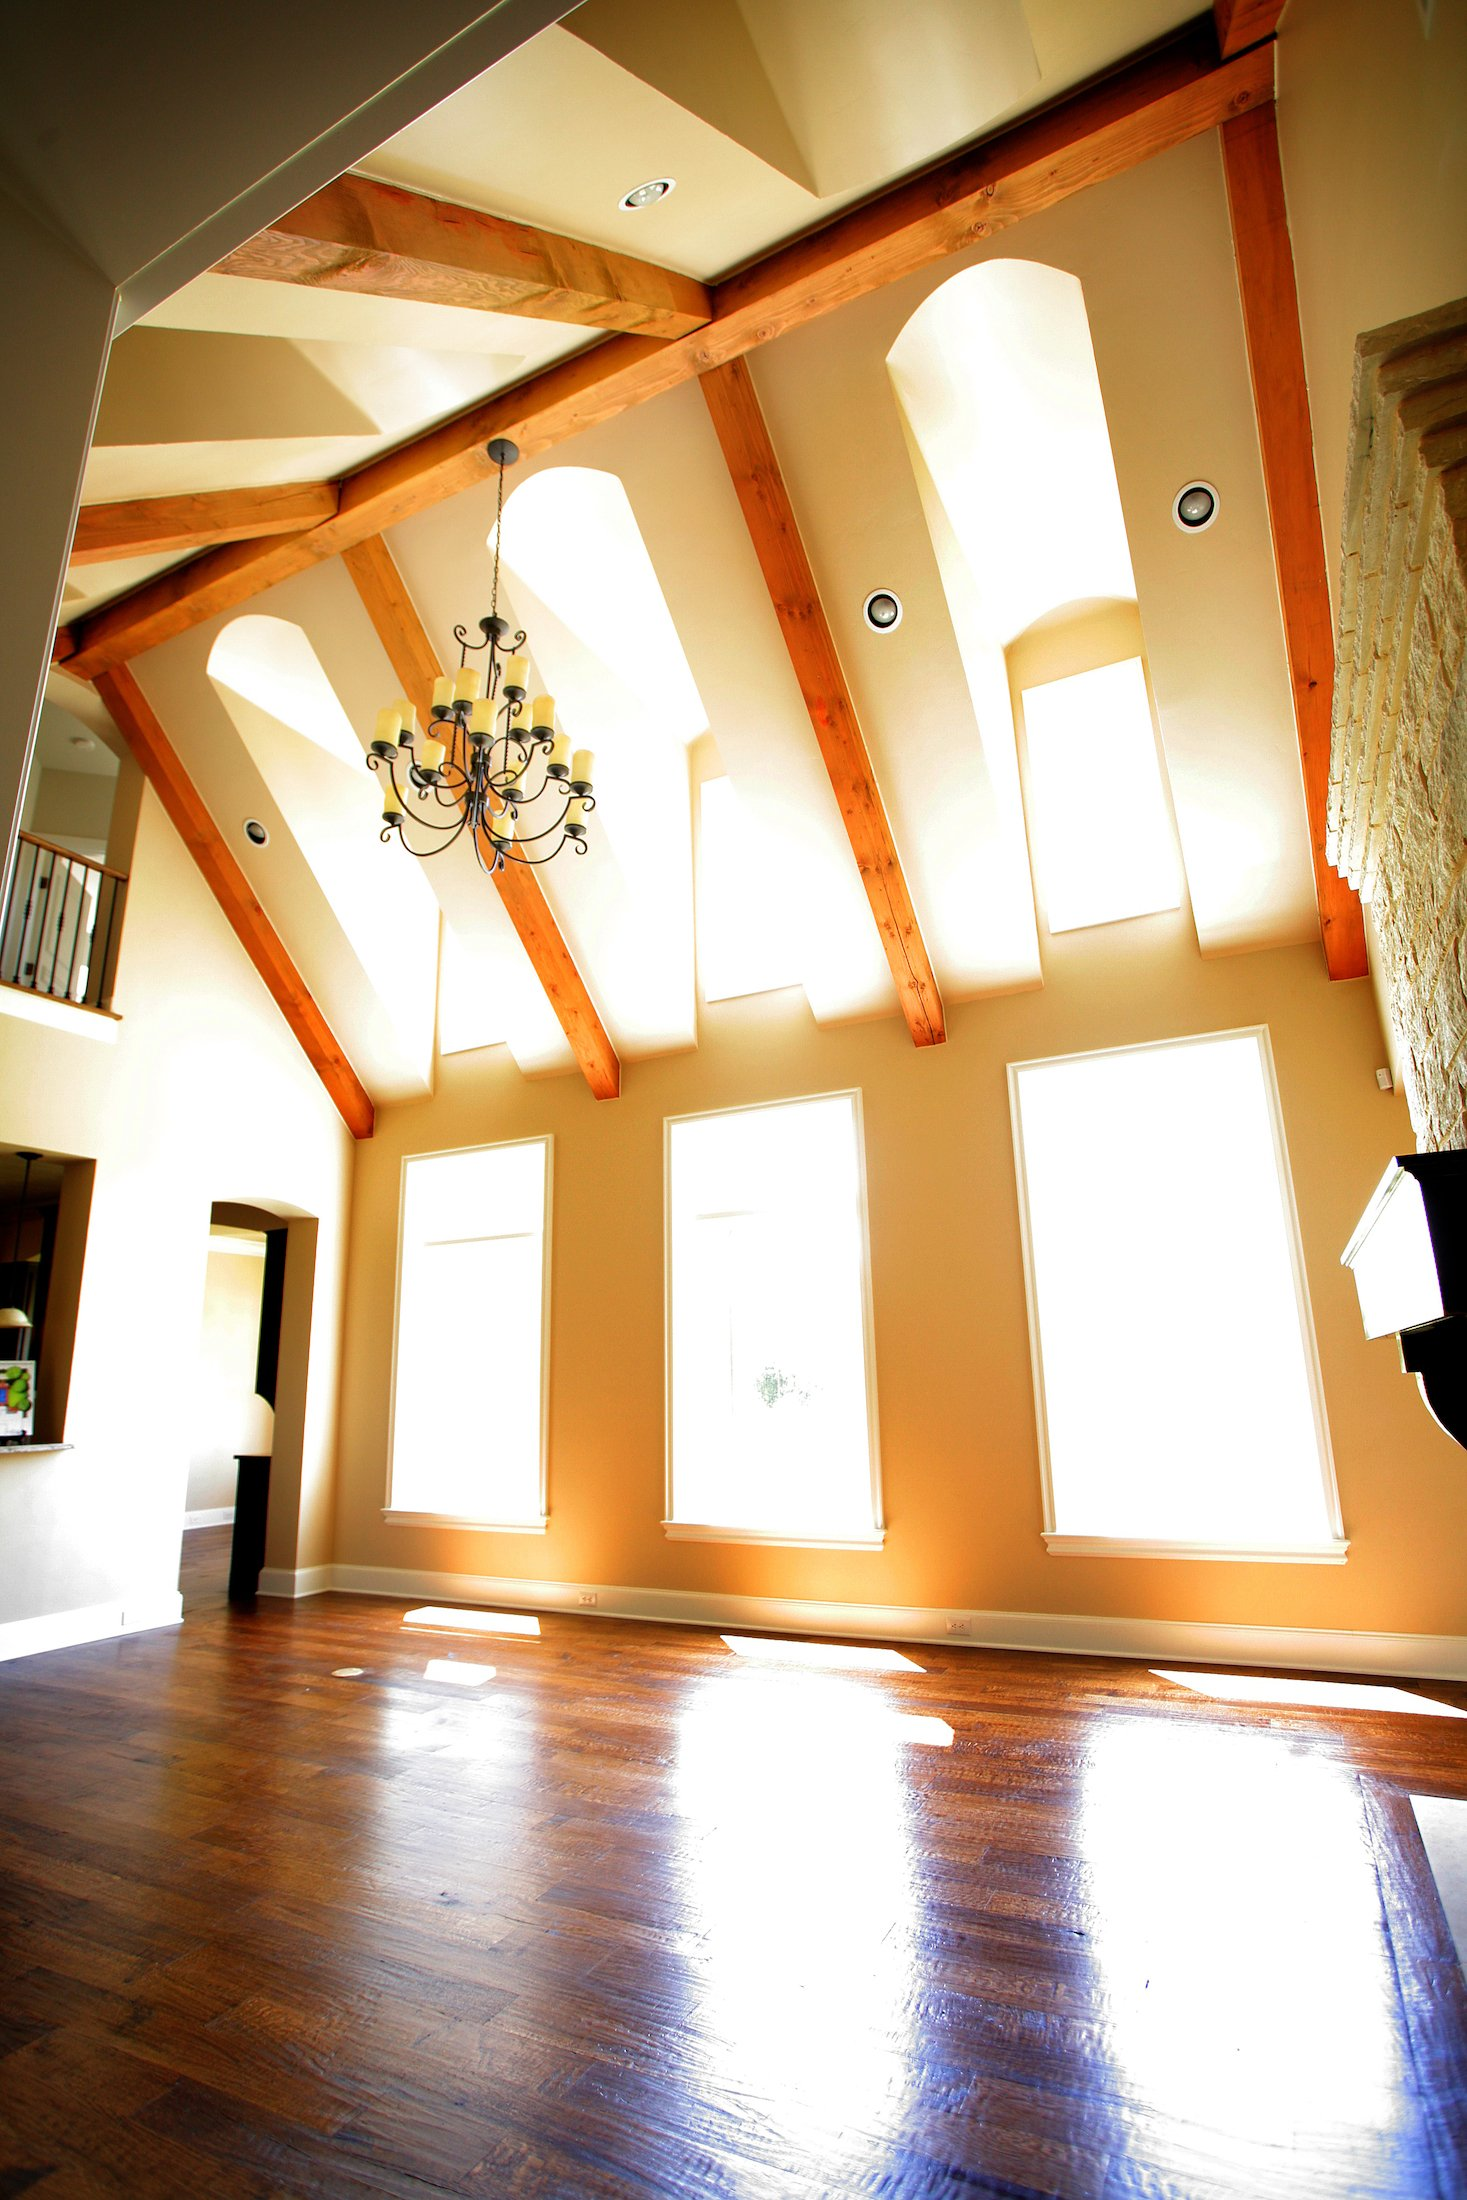 Living Room Design (Texas Homes): Timbers in Vaulted Ceiling with Dormers